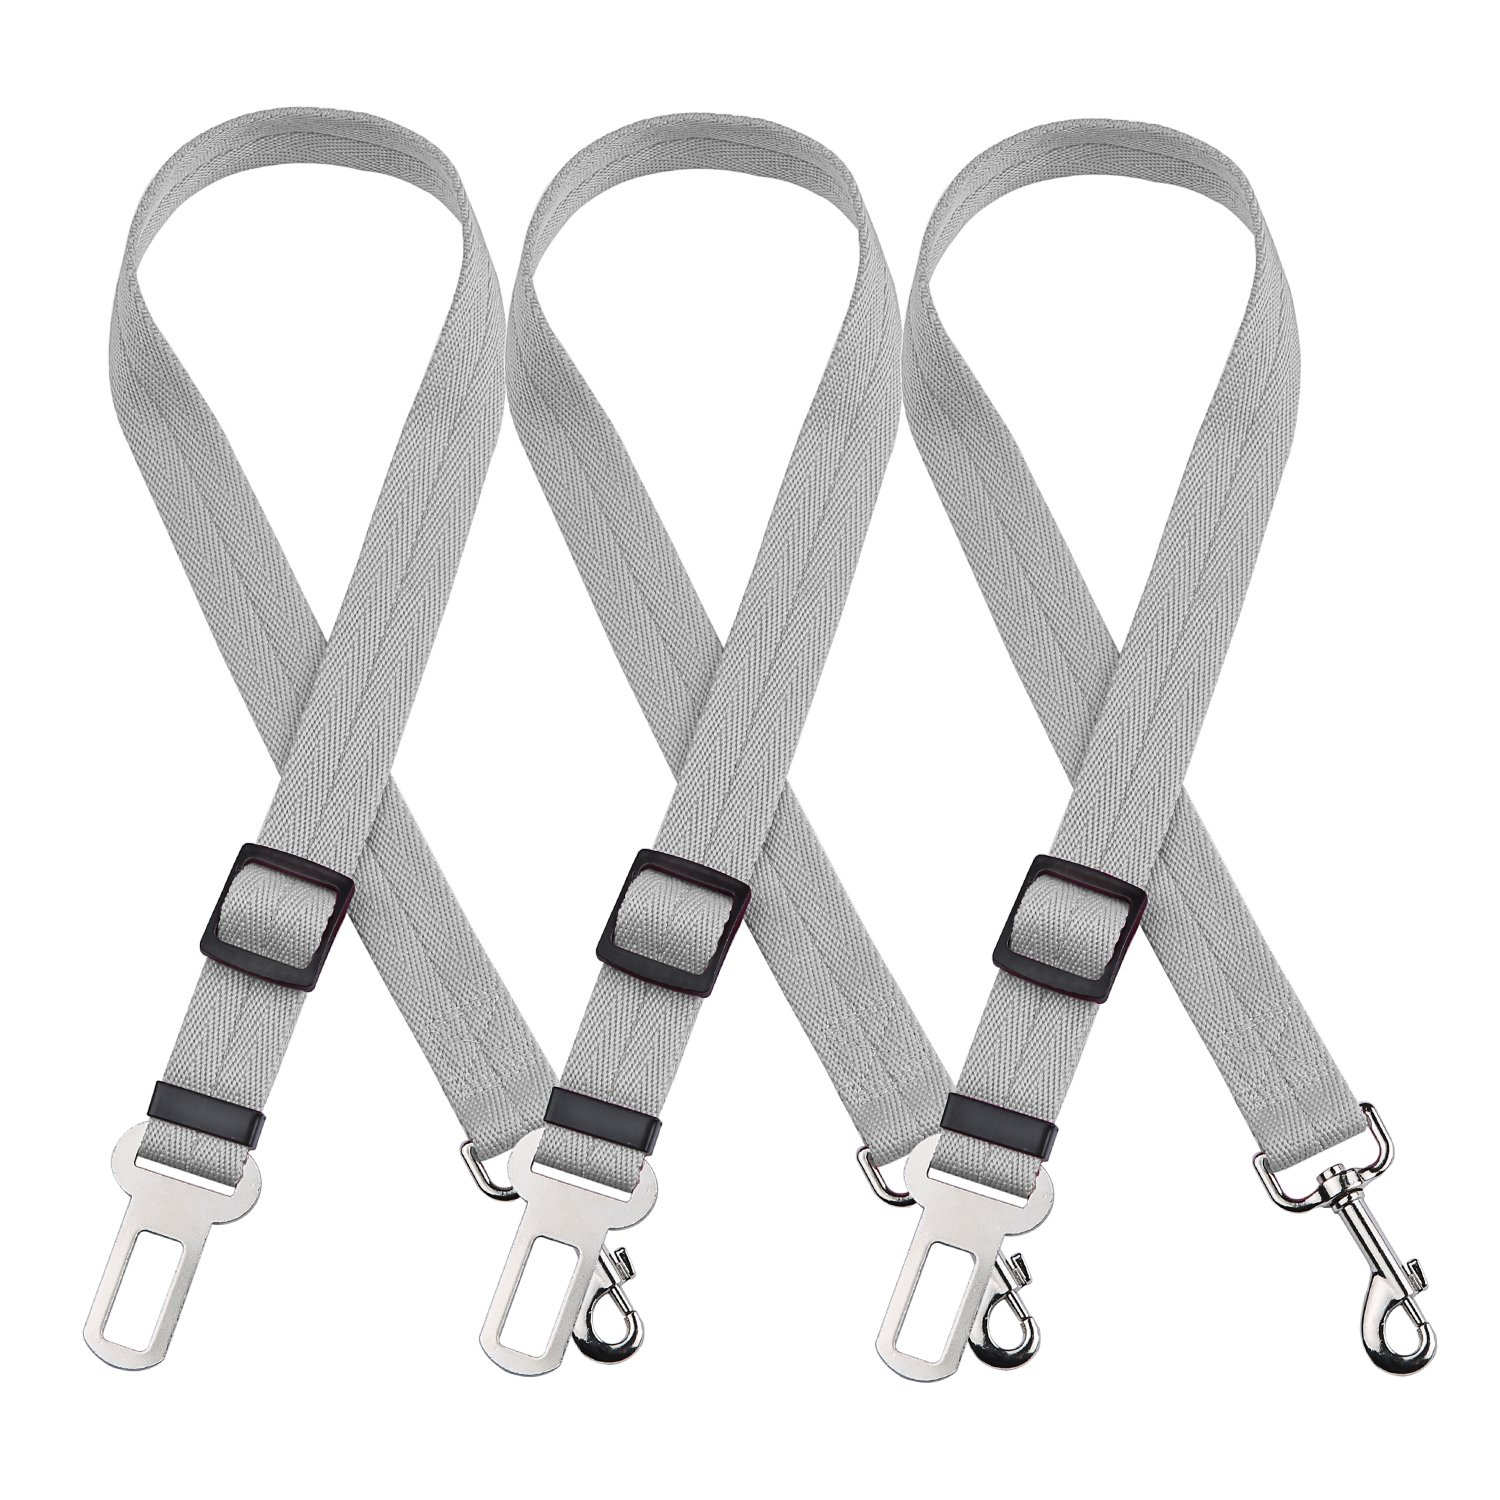 luciphia Dog Seat Belt, 3 Packs Adjustable Vehicle Car Seatbelt Leash Safety Leads Harness for Pets Cats Animals Gray